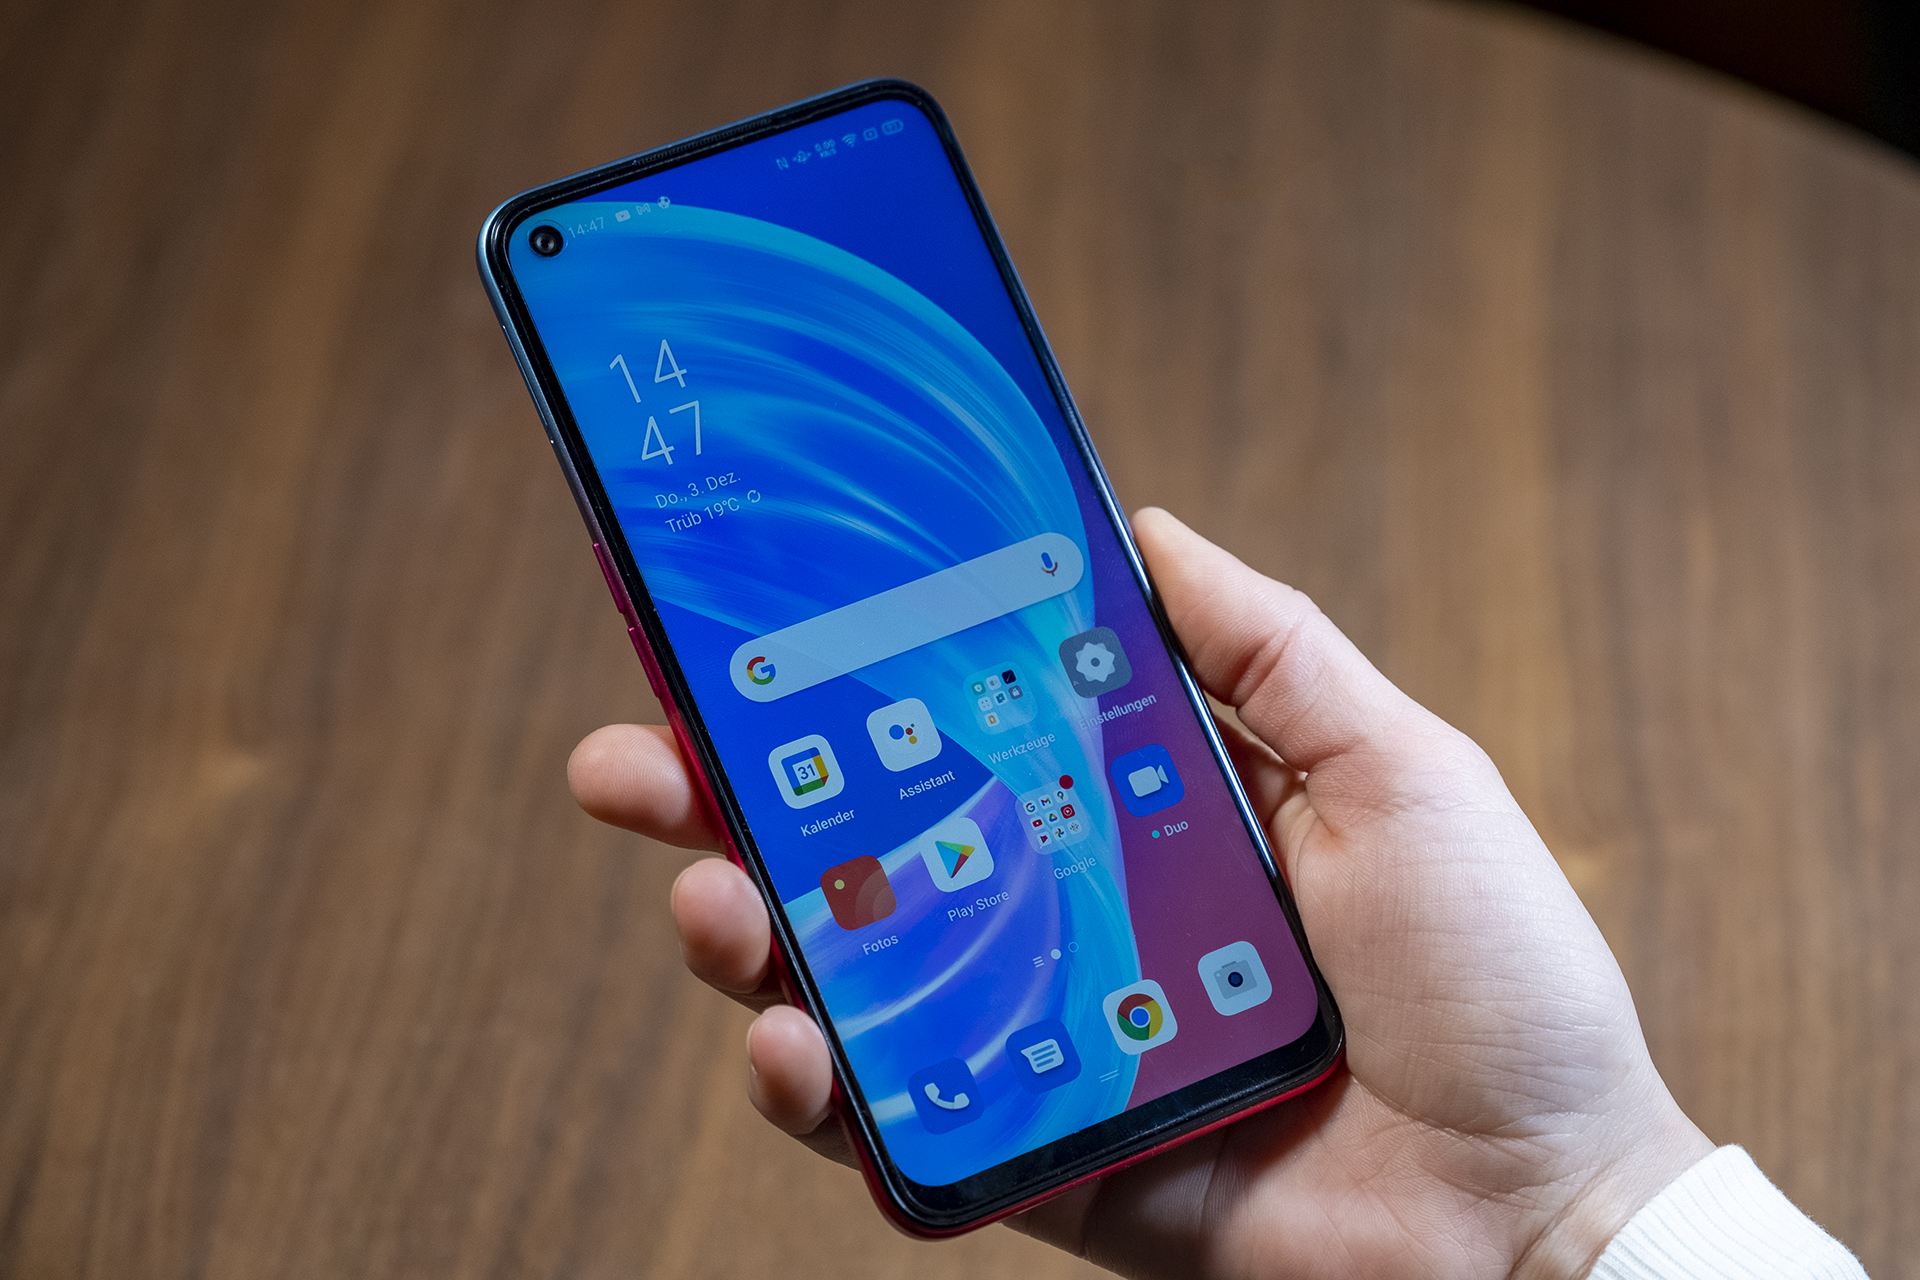 OPPO A73 5G Smartphone Review Test In der Hand